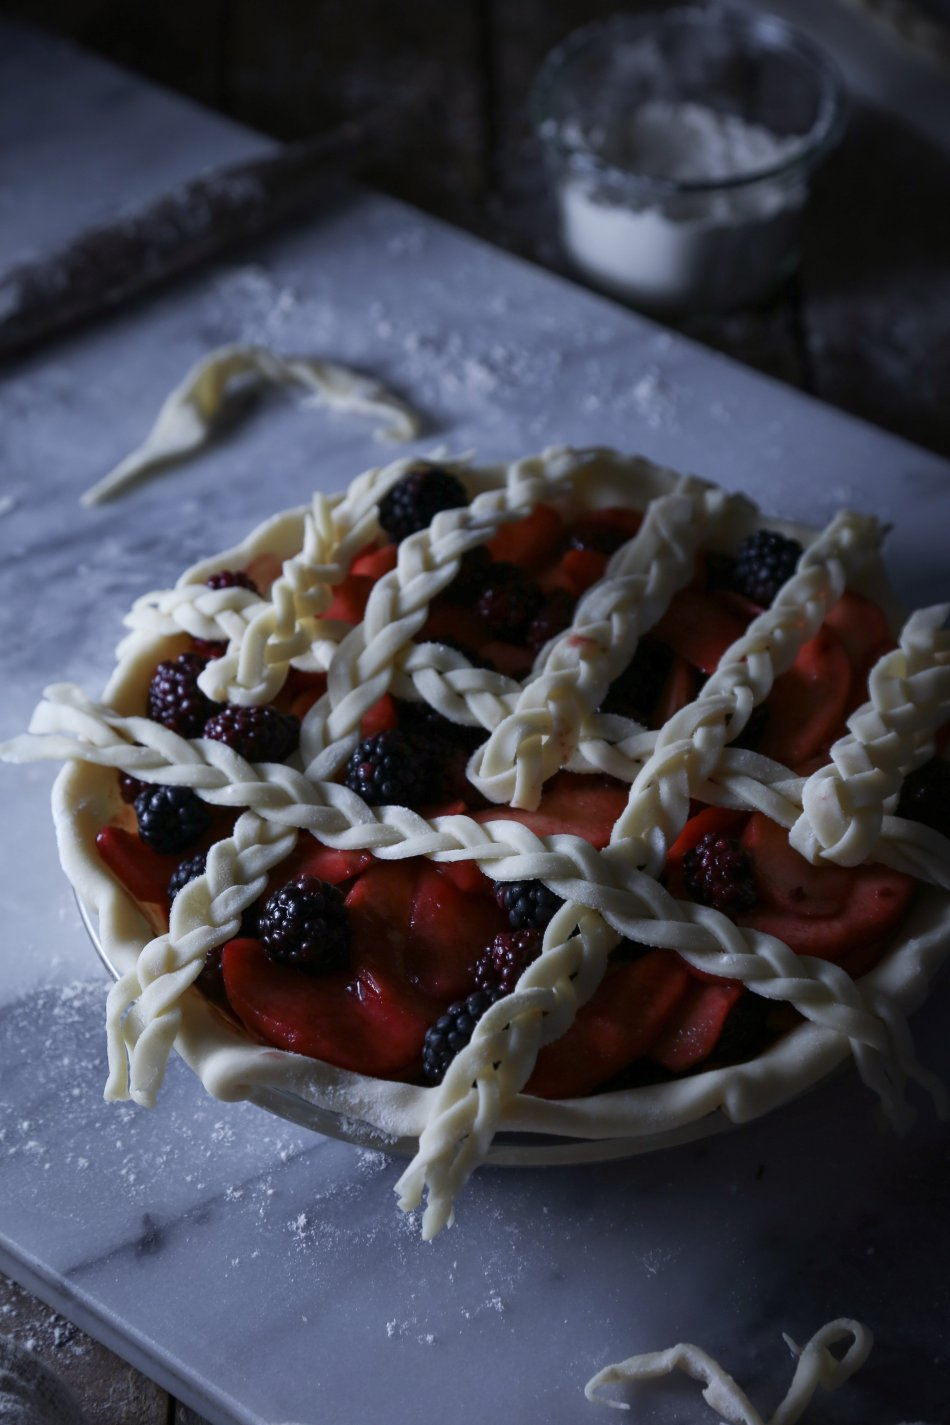 Apple-Blackberry Pie with Braided Lattice Crust | Refined Sugar Free. Dairy + Gluten Alternatives Included.